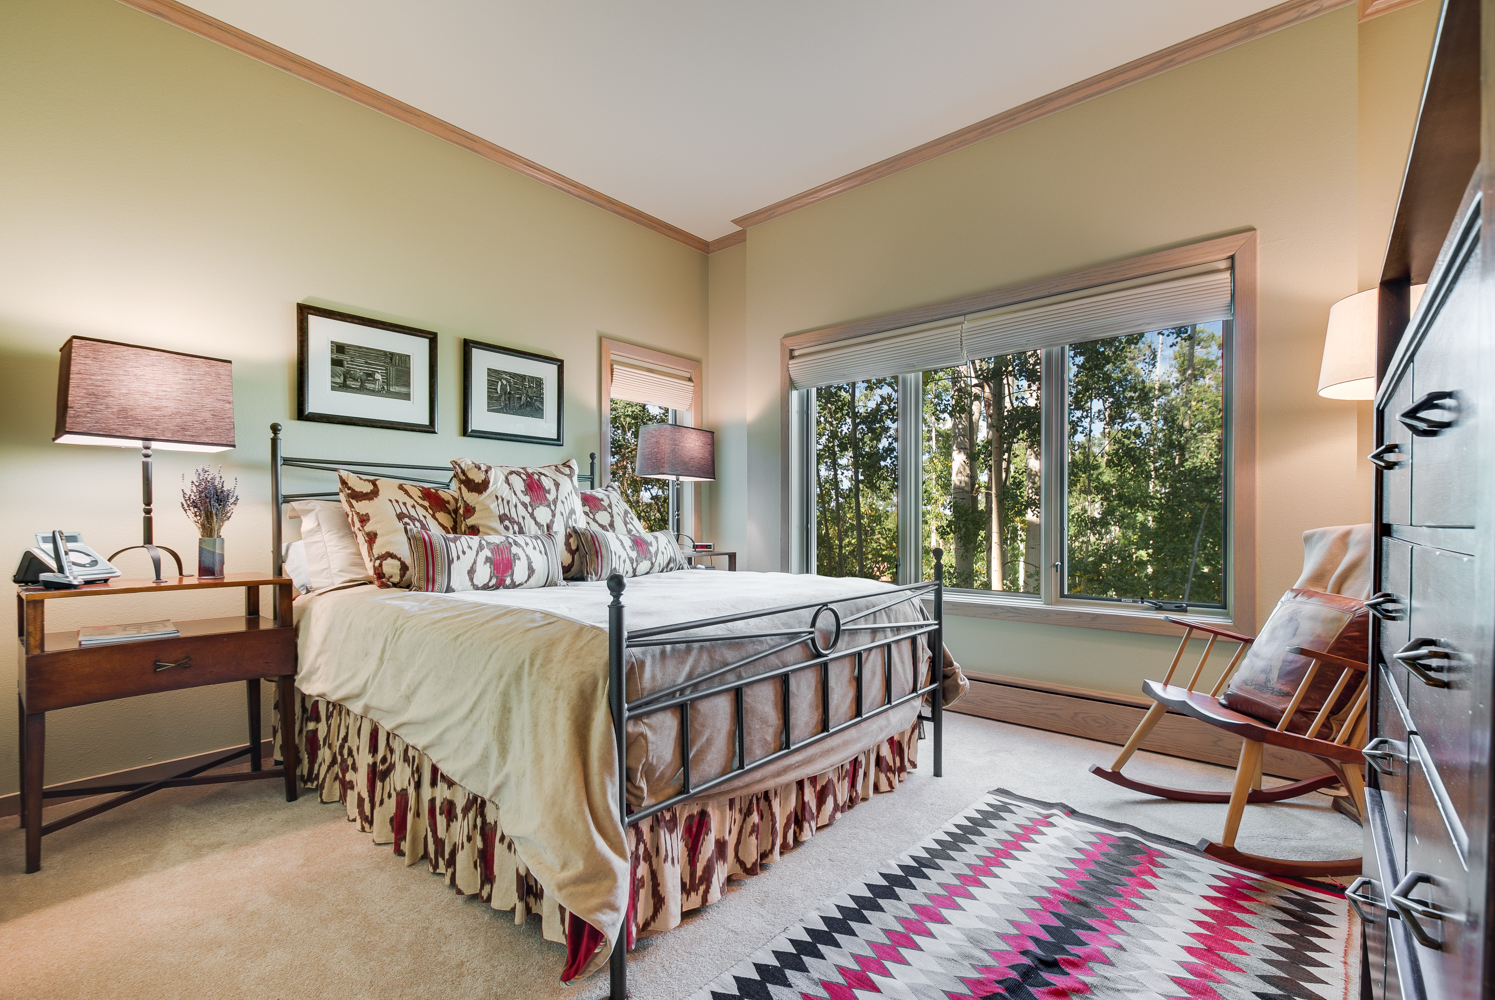 Bedroom with queen bed and rocking chair